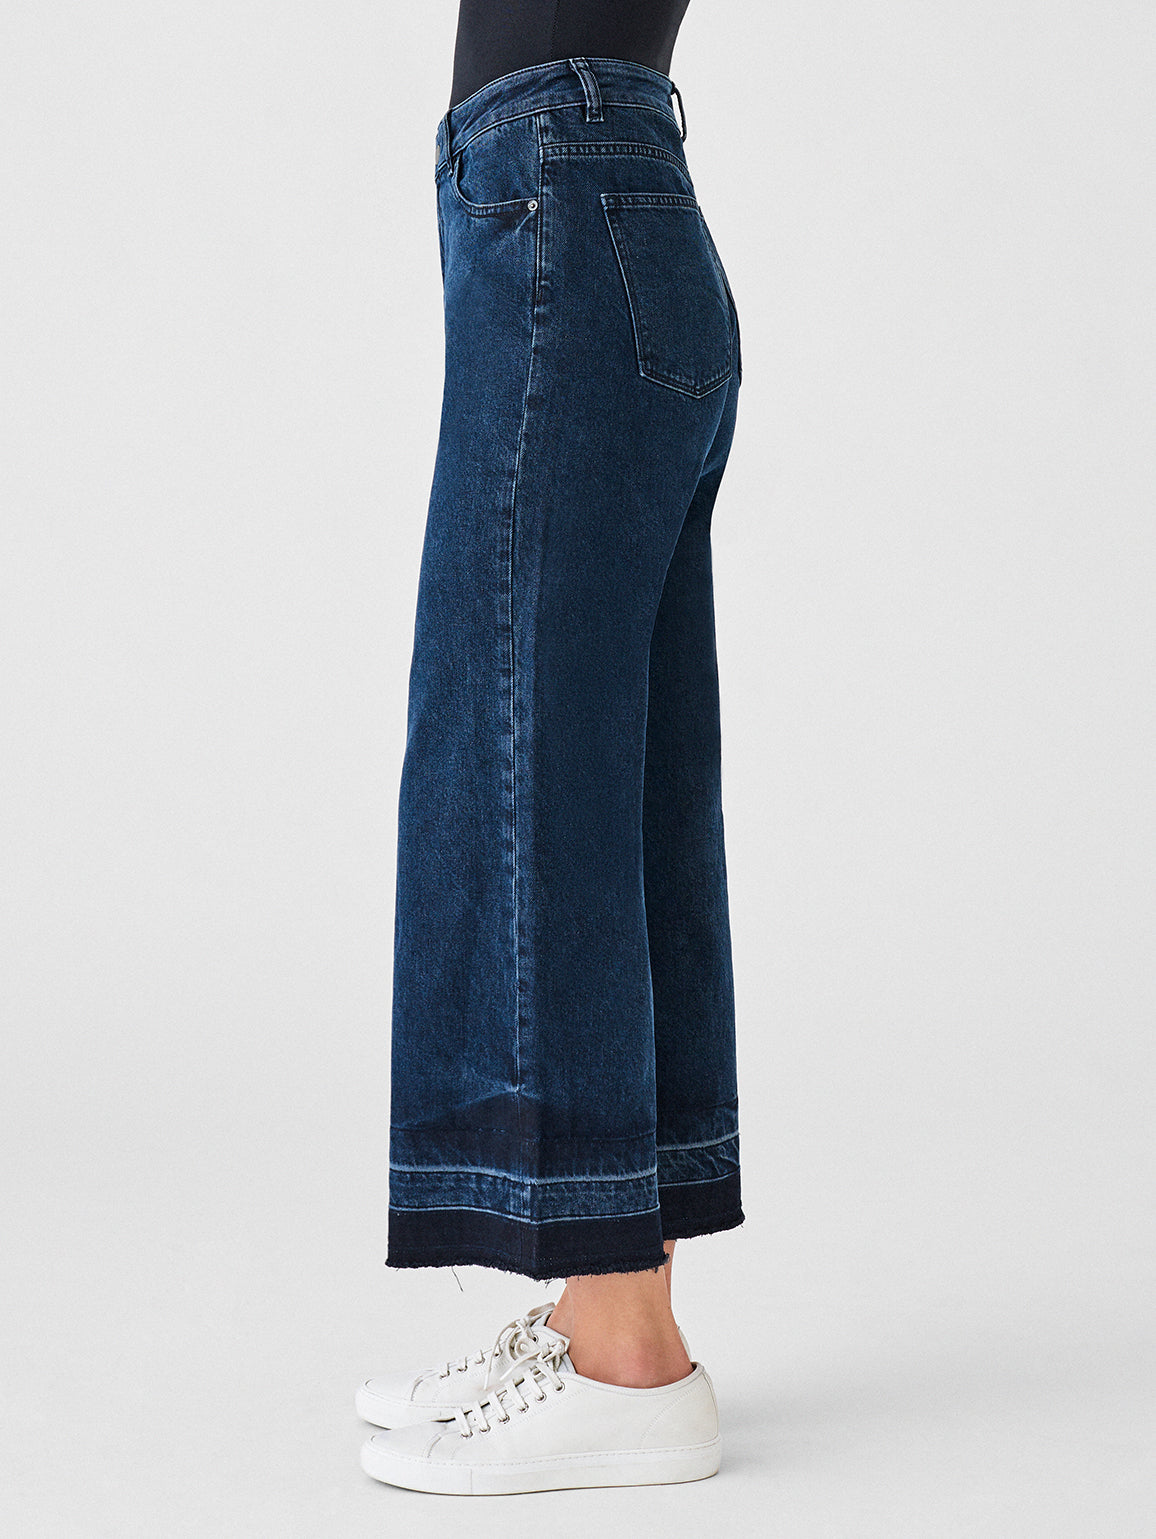 Women - Hepburn High Rise Wide Leg | Stoll - DL1961